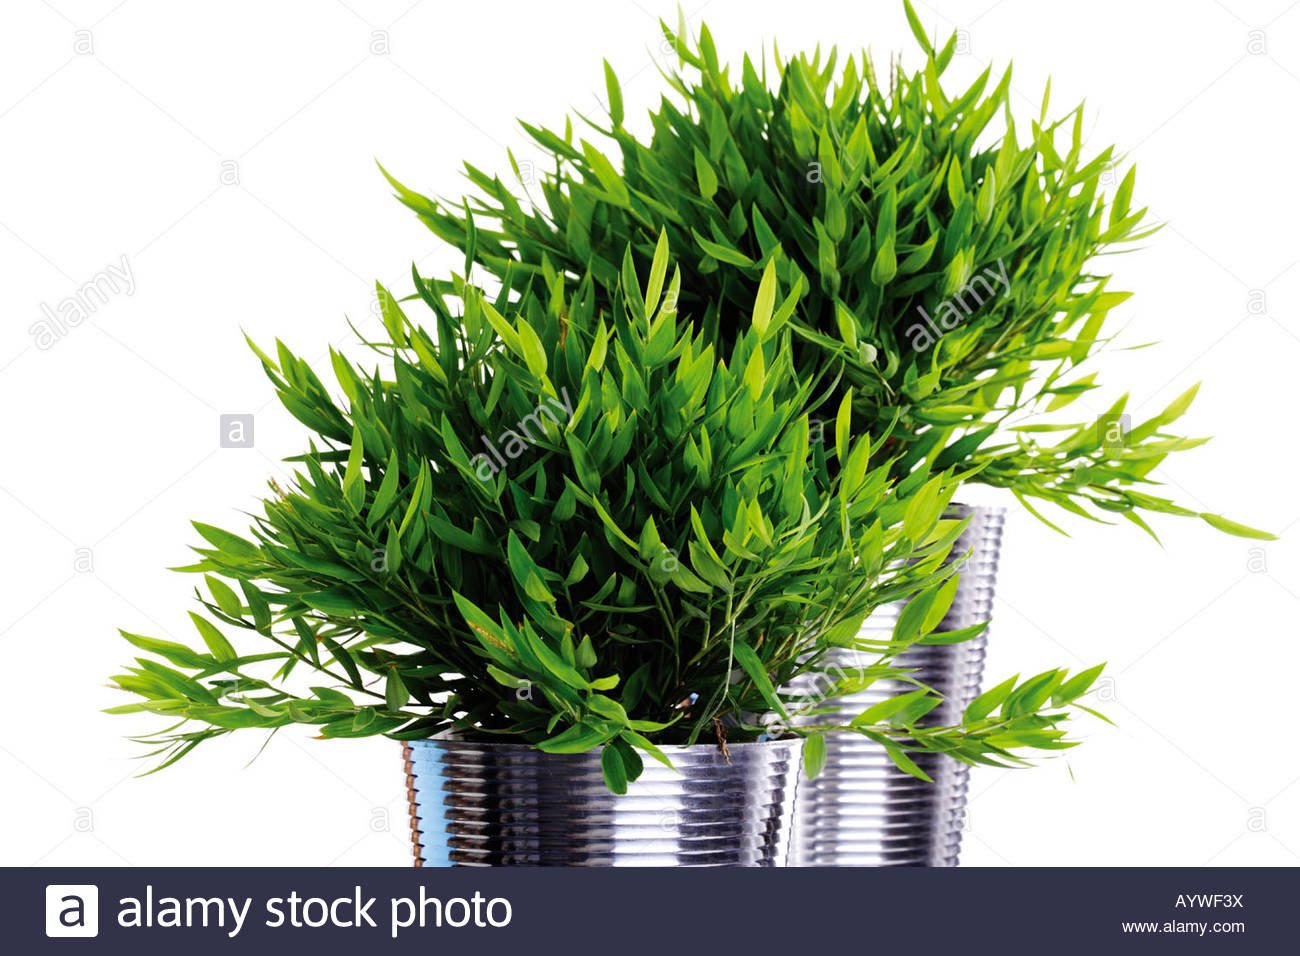 ornamental plant stockfotos ornamental plant bilder alamy. Black Bedroom Furniture Sets. Home Design Ideas